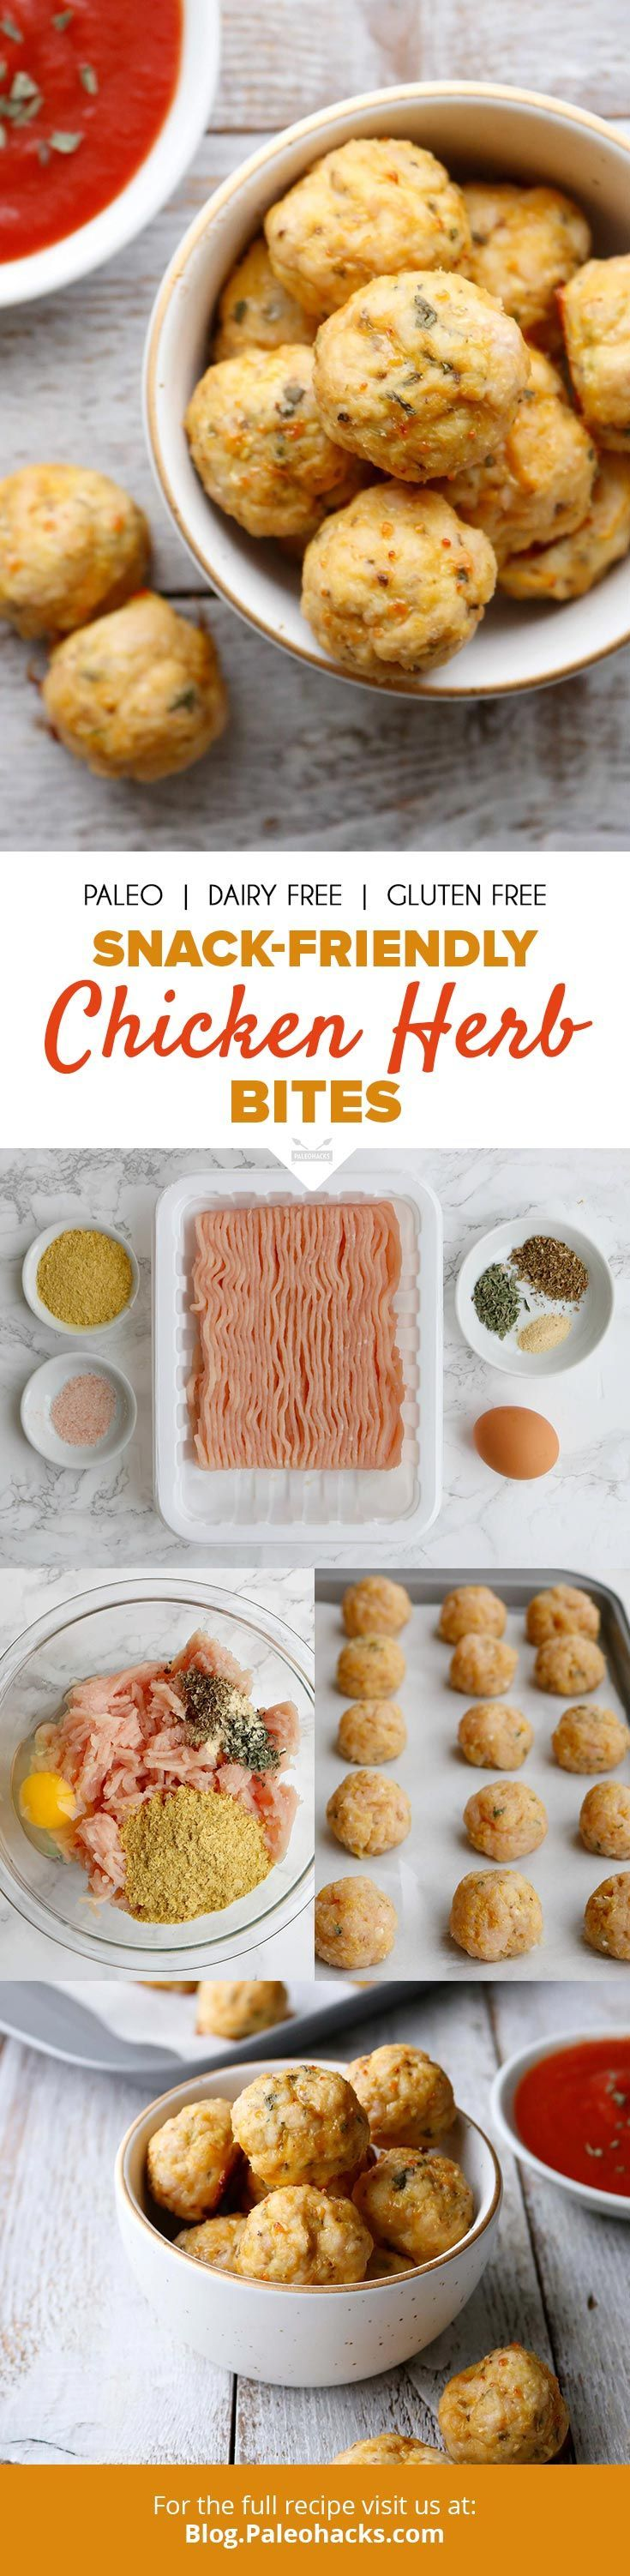 """Cure a case of the munchies with these """"cheesy"""" chicken herb bites! Get the full recipe here: http://paleo.co/chickenbites"""